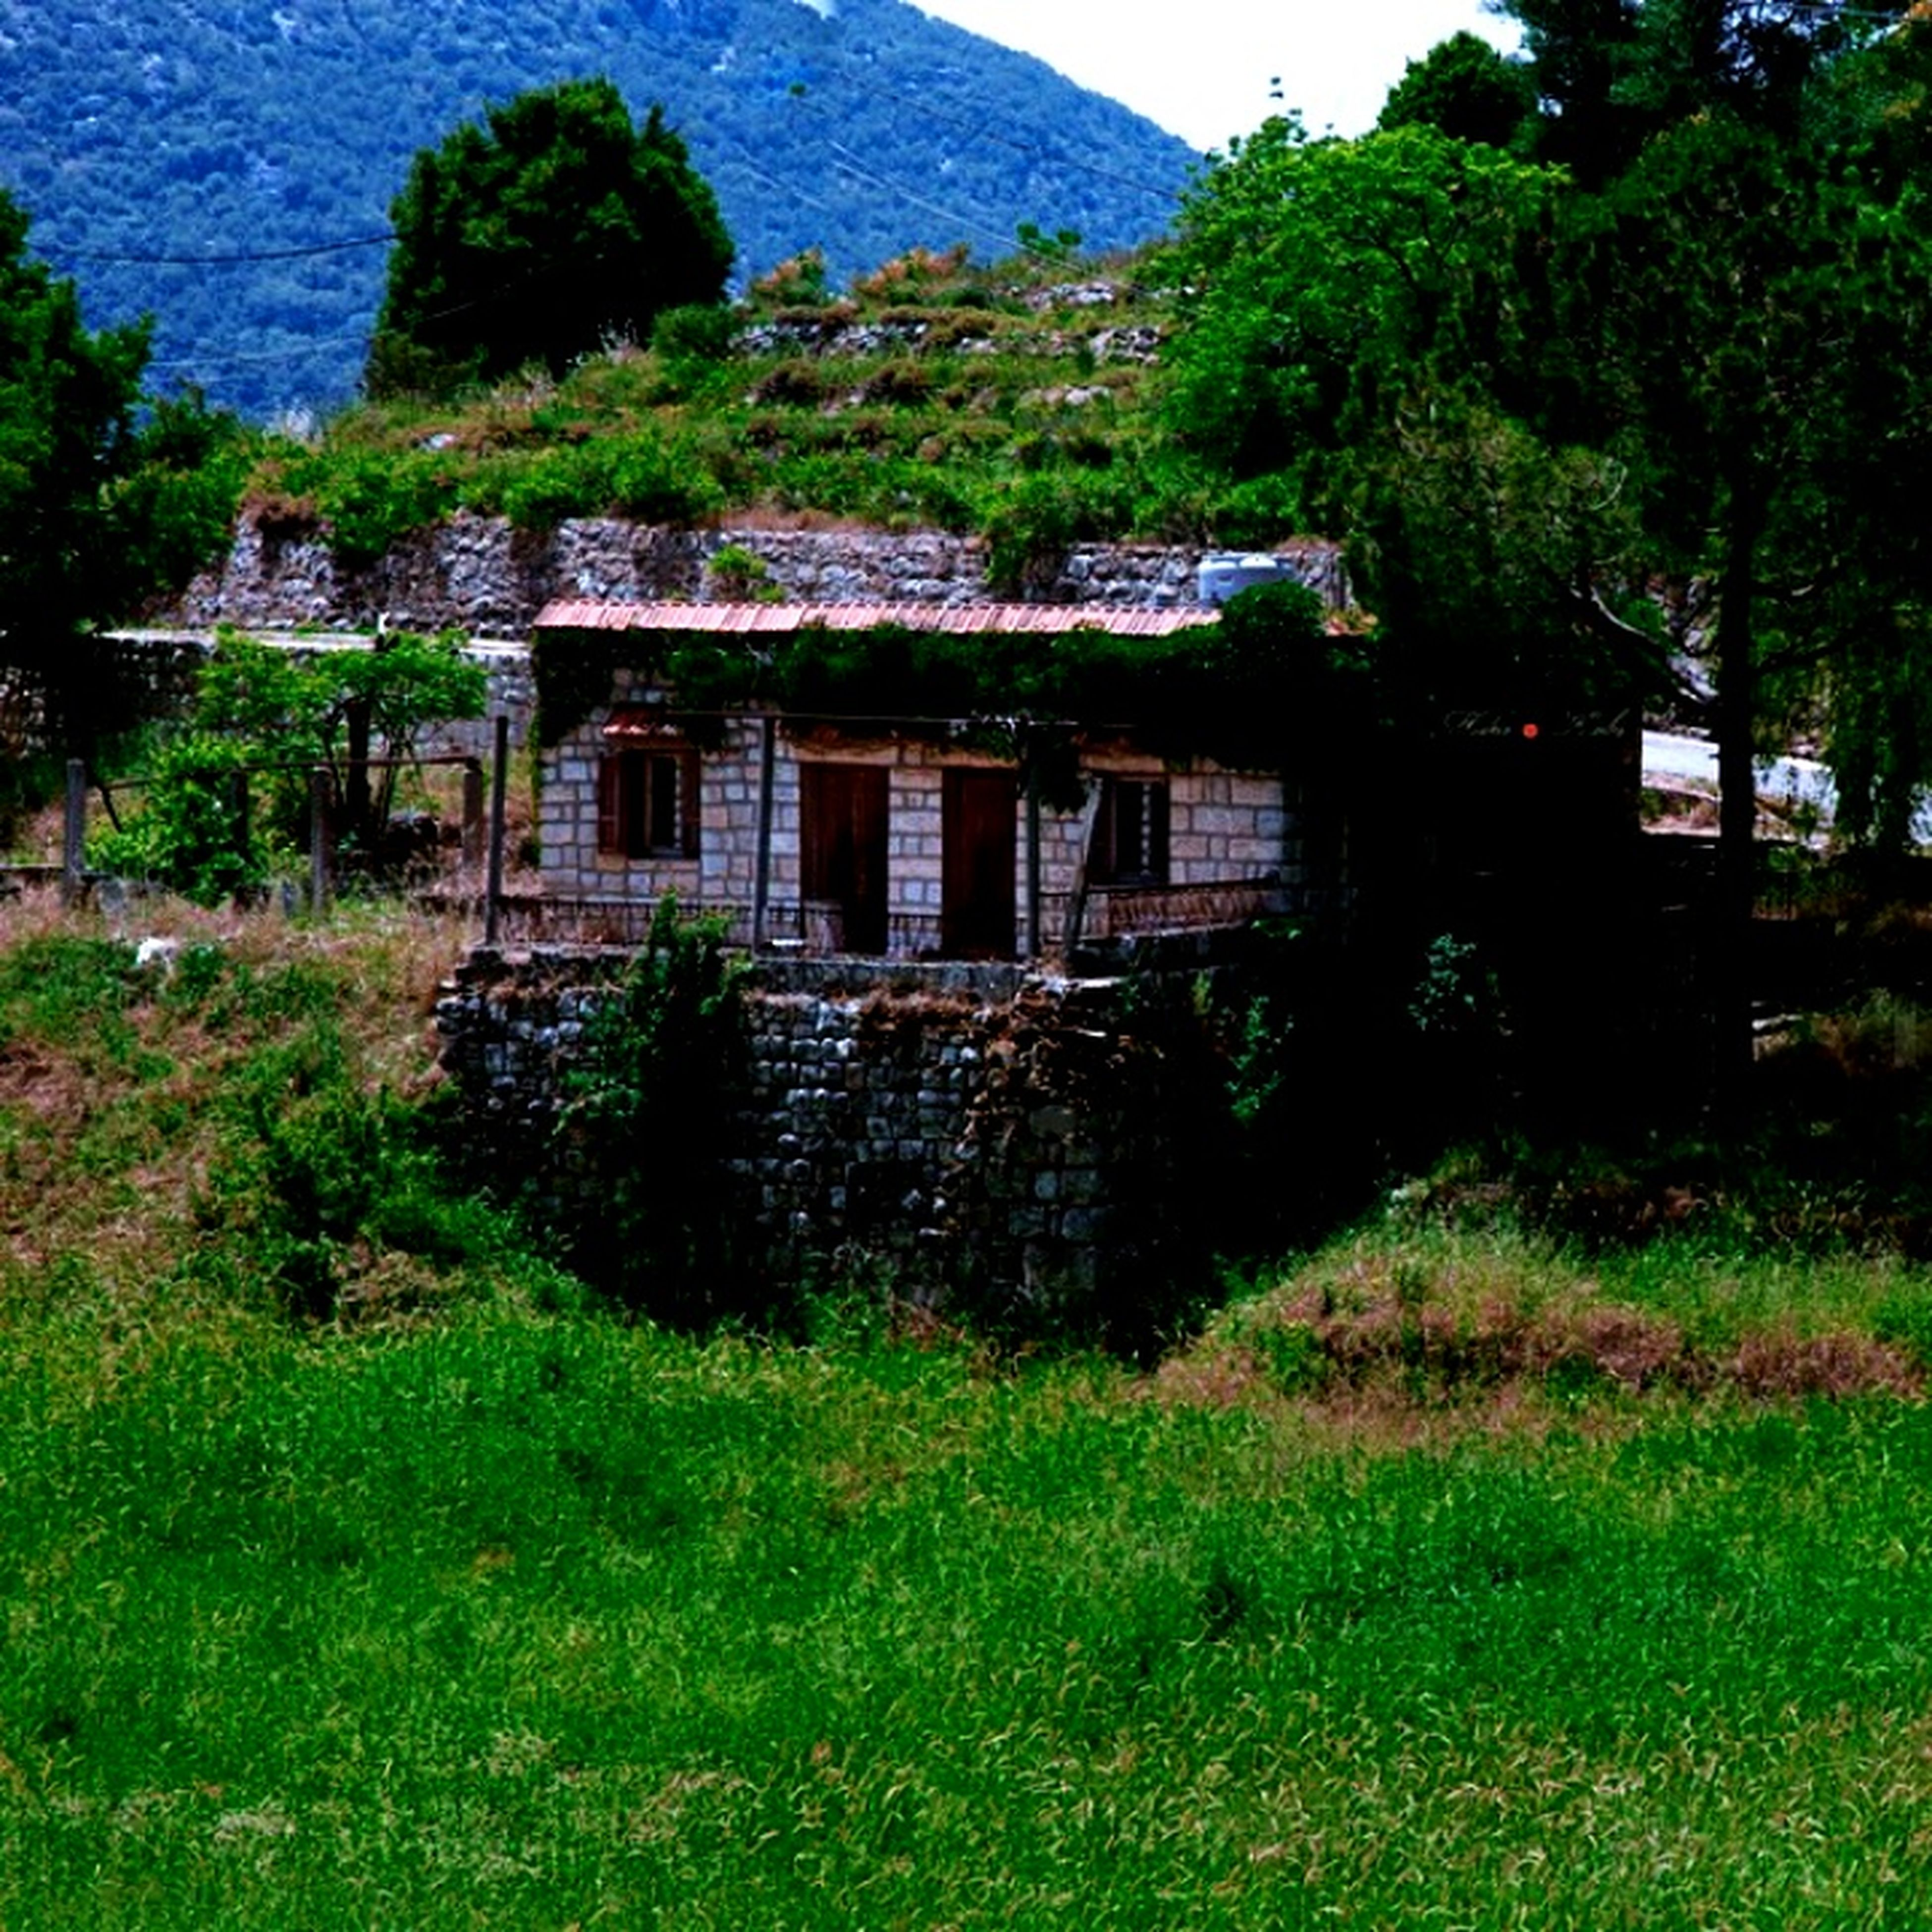 building exterior, built structure, architecture, house, tree, grass, green color, residential structure, growth, mountain, plant, nature, residential building, tranquility, tranquil scene, sky, day, sunlight, landscape, no people